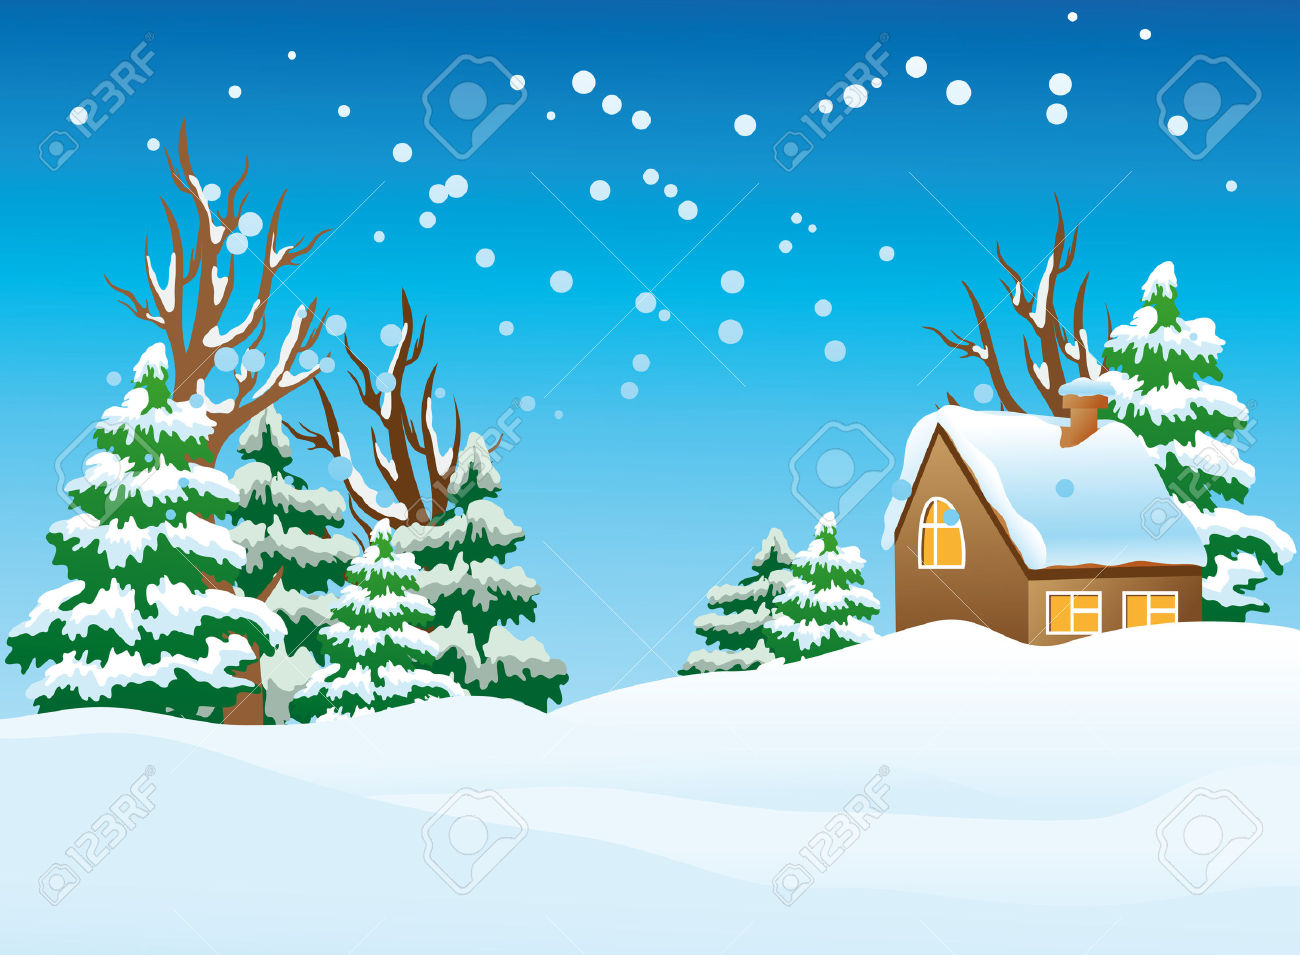 Free snow cliparts download. Winter clipart scenery